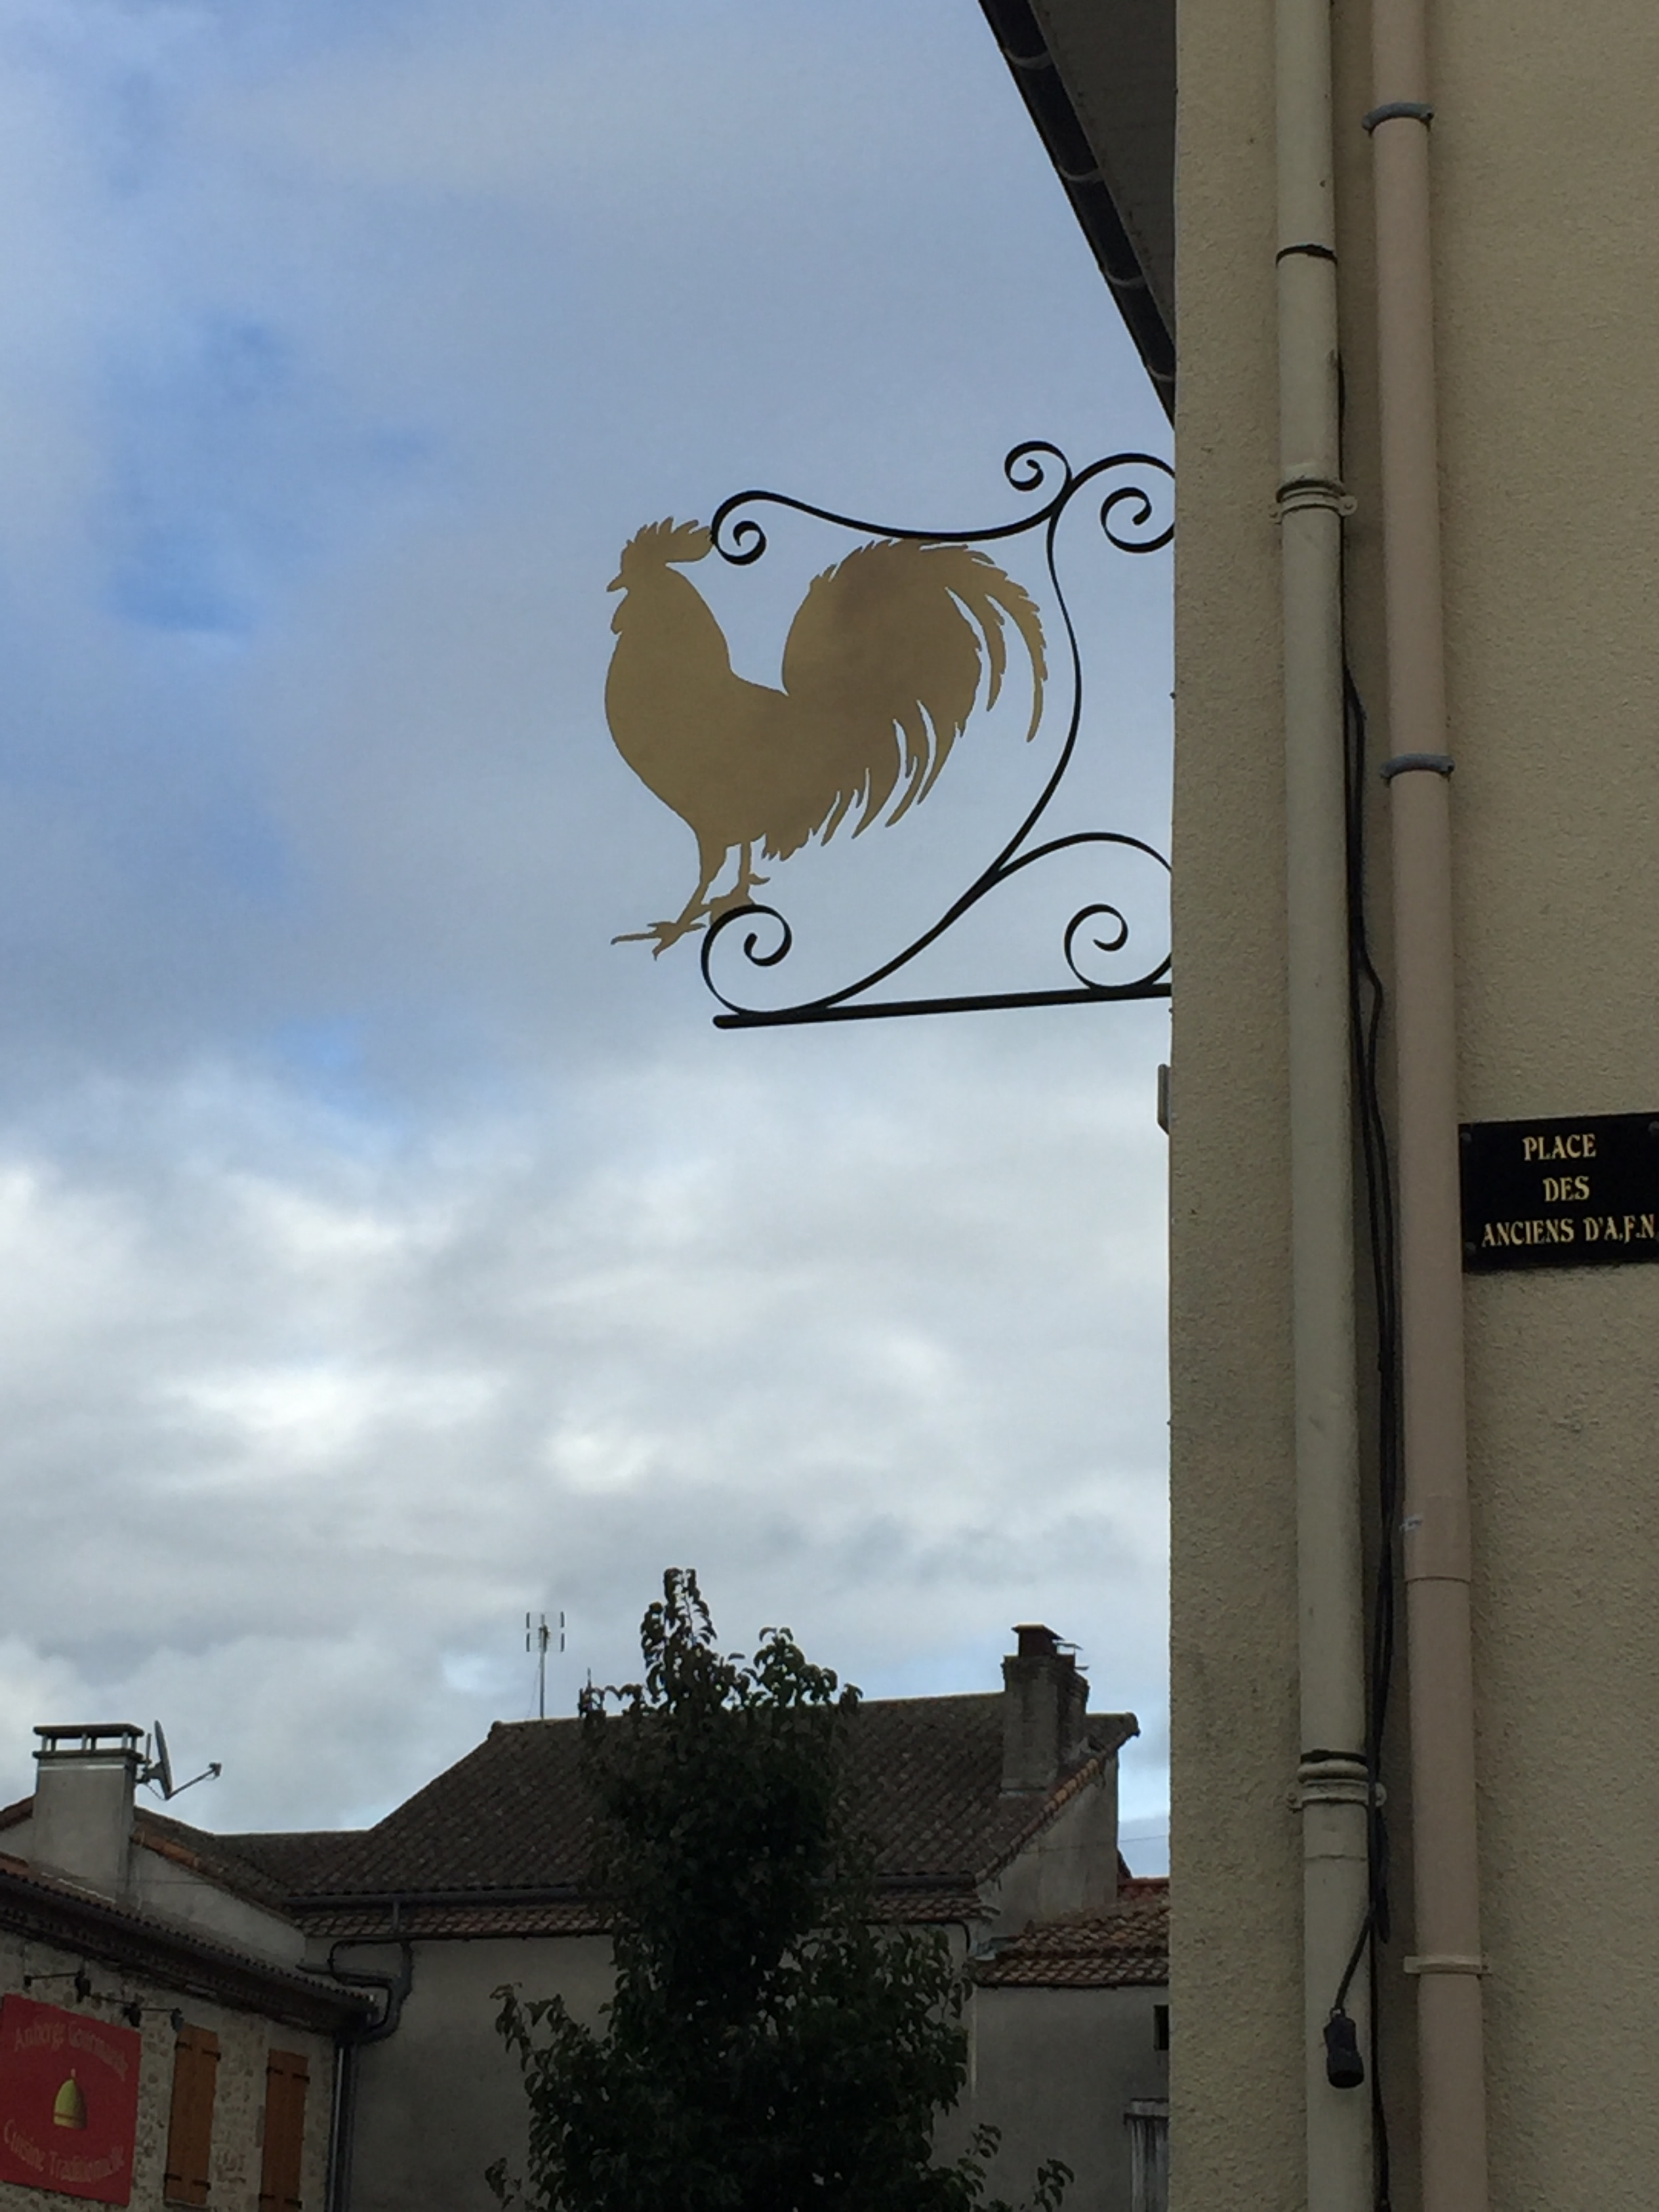 Here it is in situ. Café/bar 'Le Coq'! Don't think you will miss it!